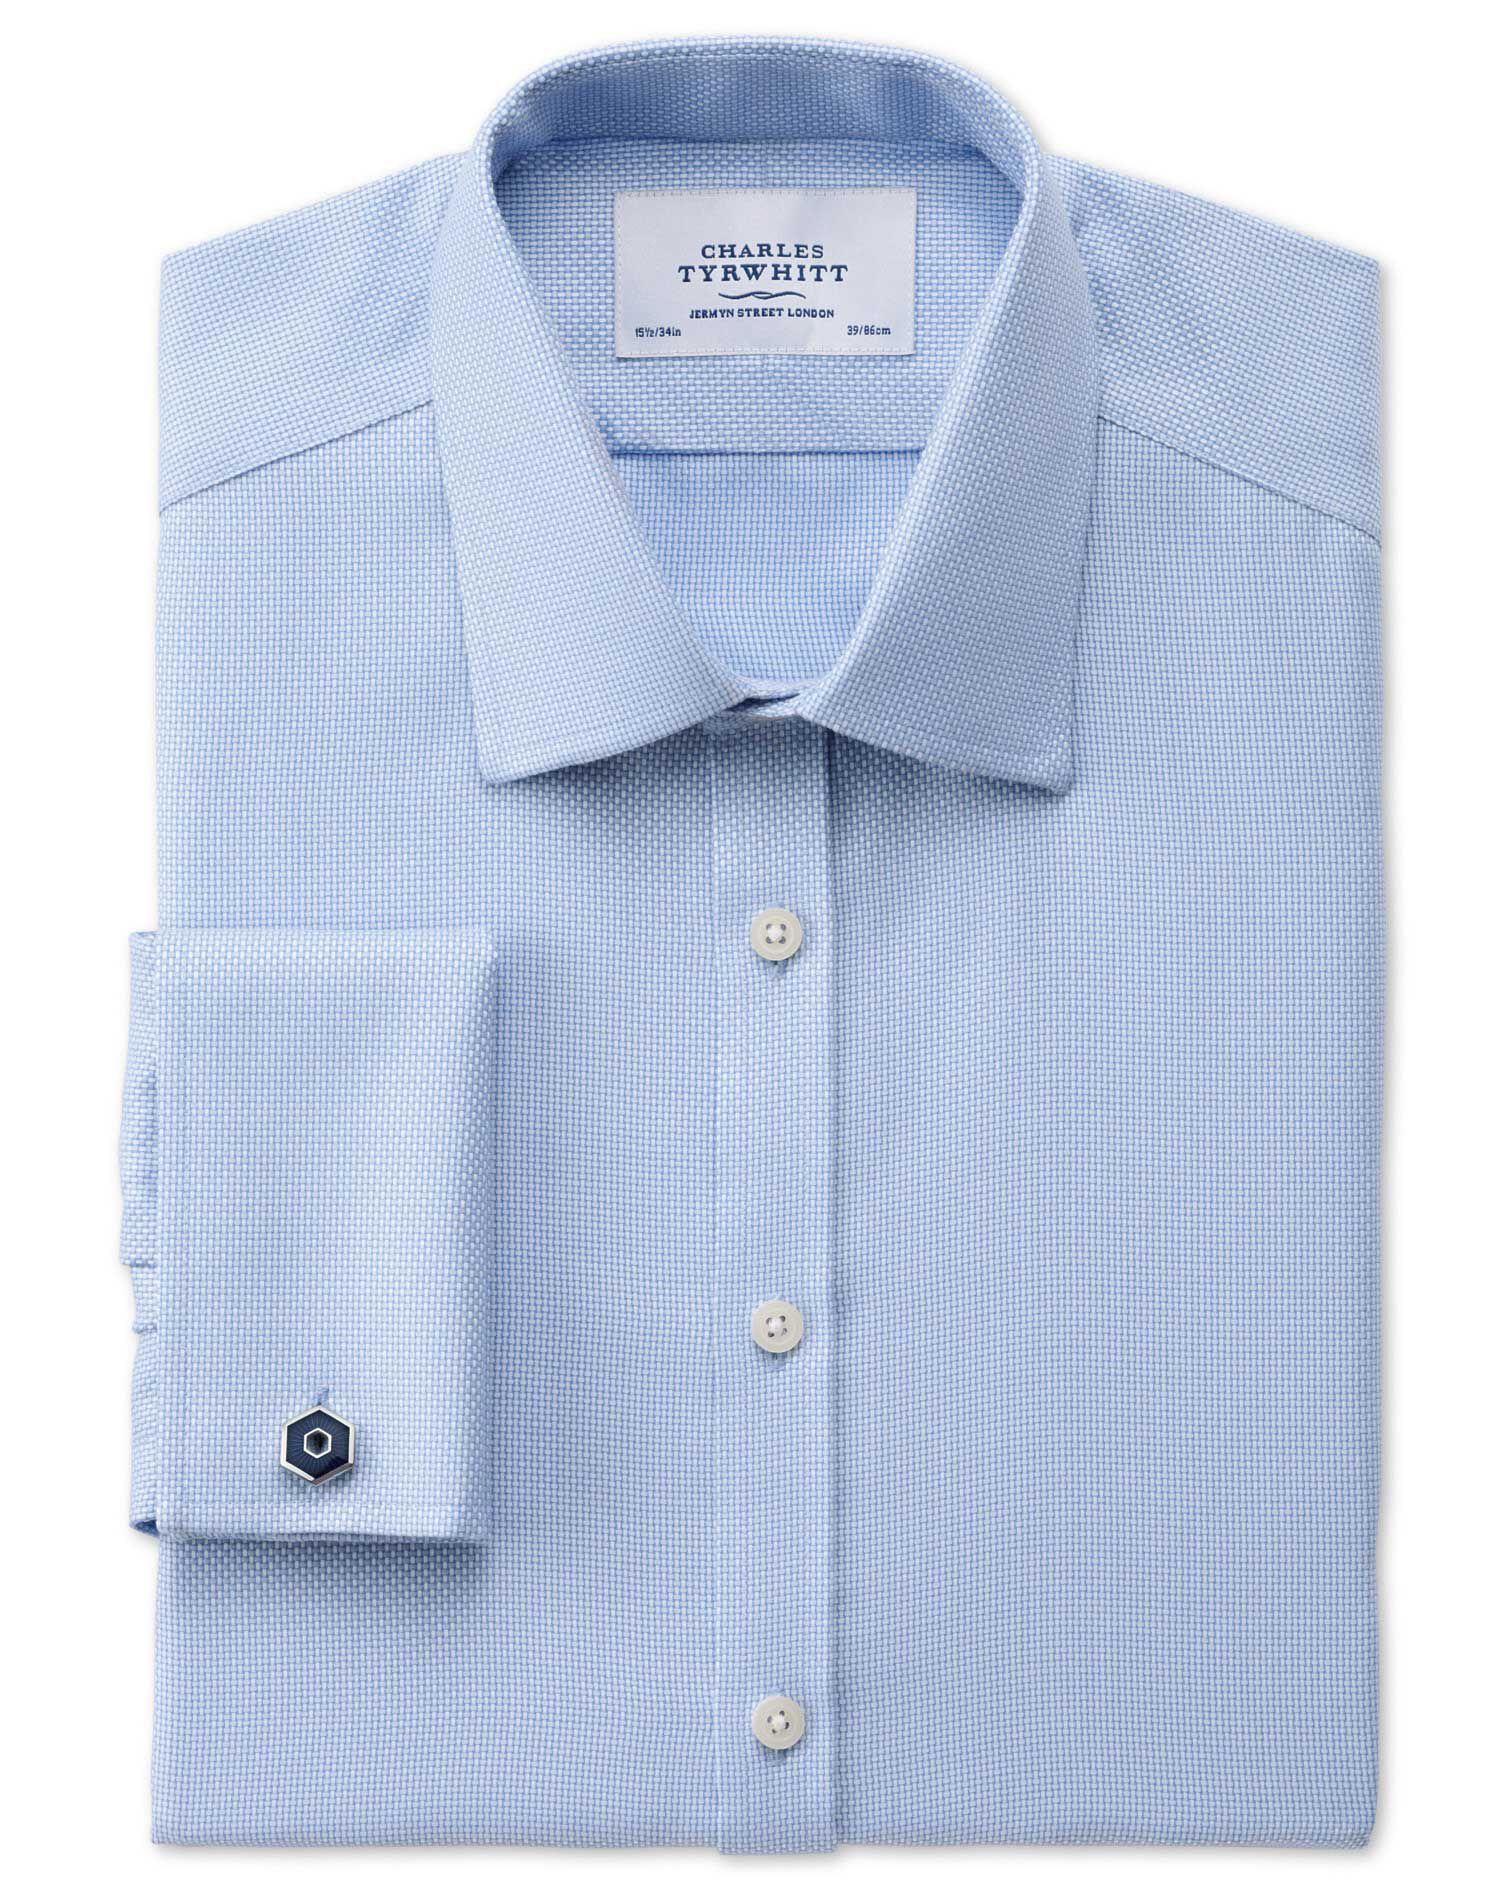 Classic Fit Non-Iron Buckingham Weave Sky Blue Cotton Formal Shirt Double Cuff Size 15/33 by Charles